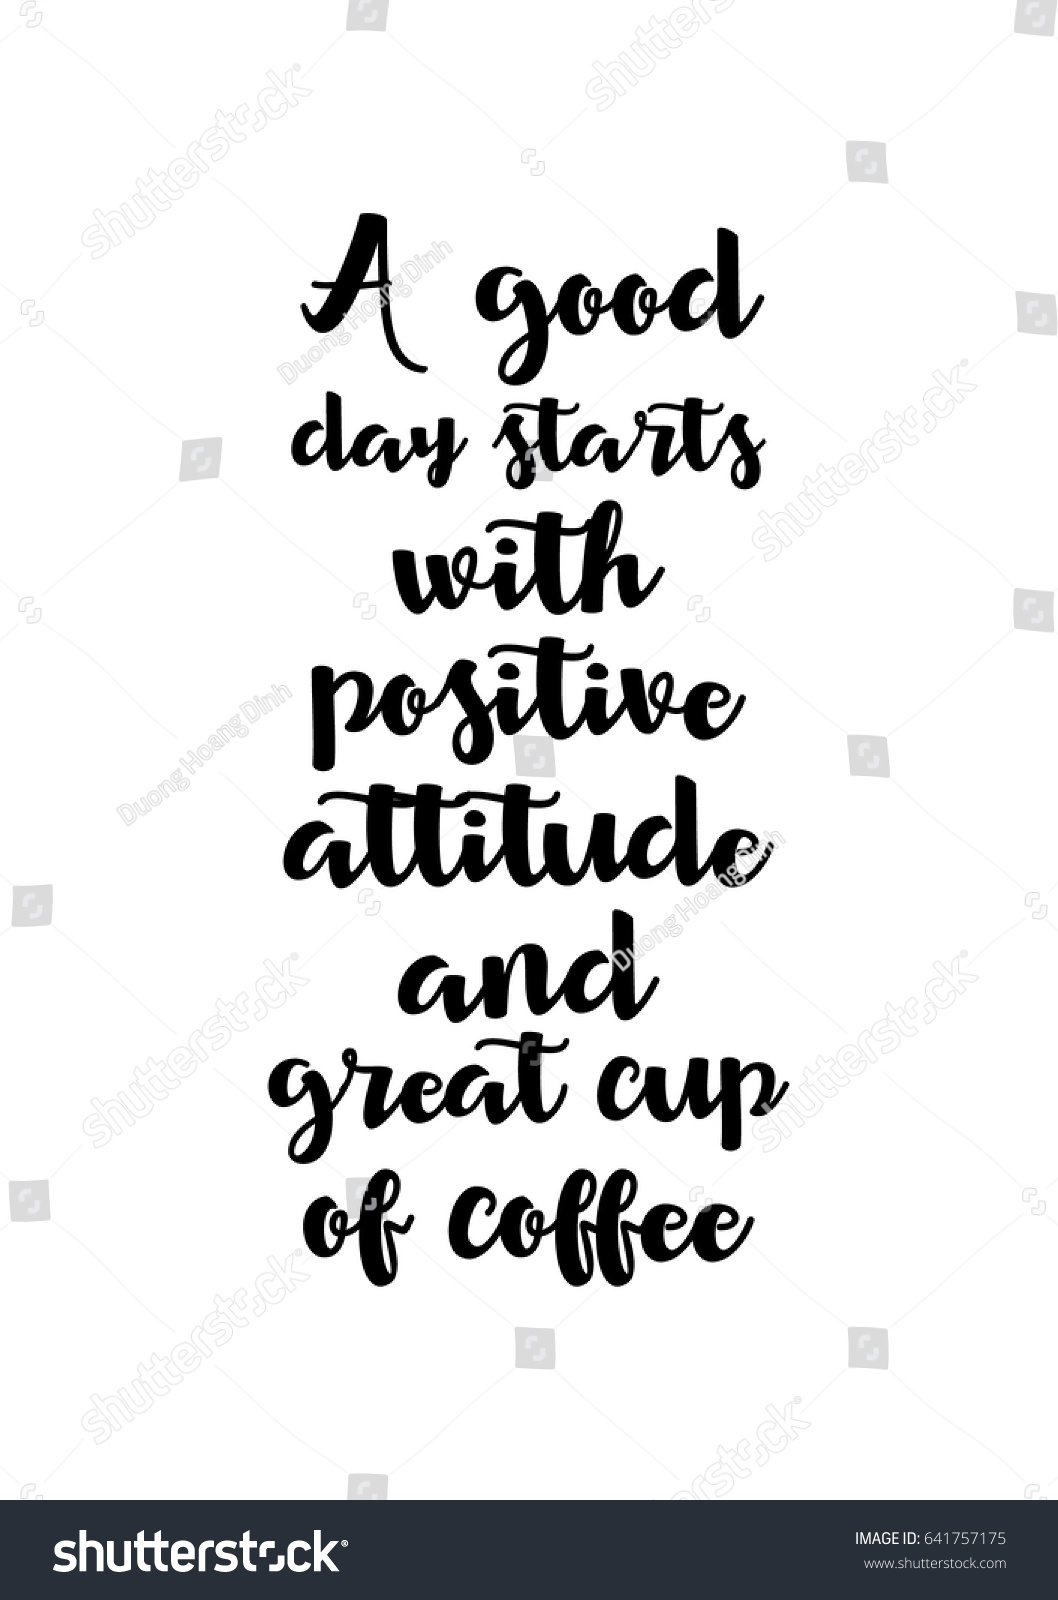 Coffee Related Illustration Quotes Graphic Design Stock Vector Royalty Free 641757175,Room Wallpaper 3d Wallpaper Design With Price